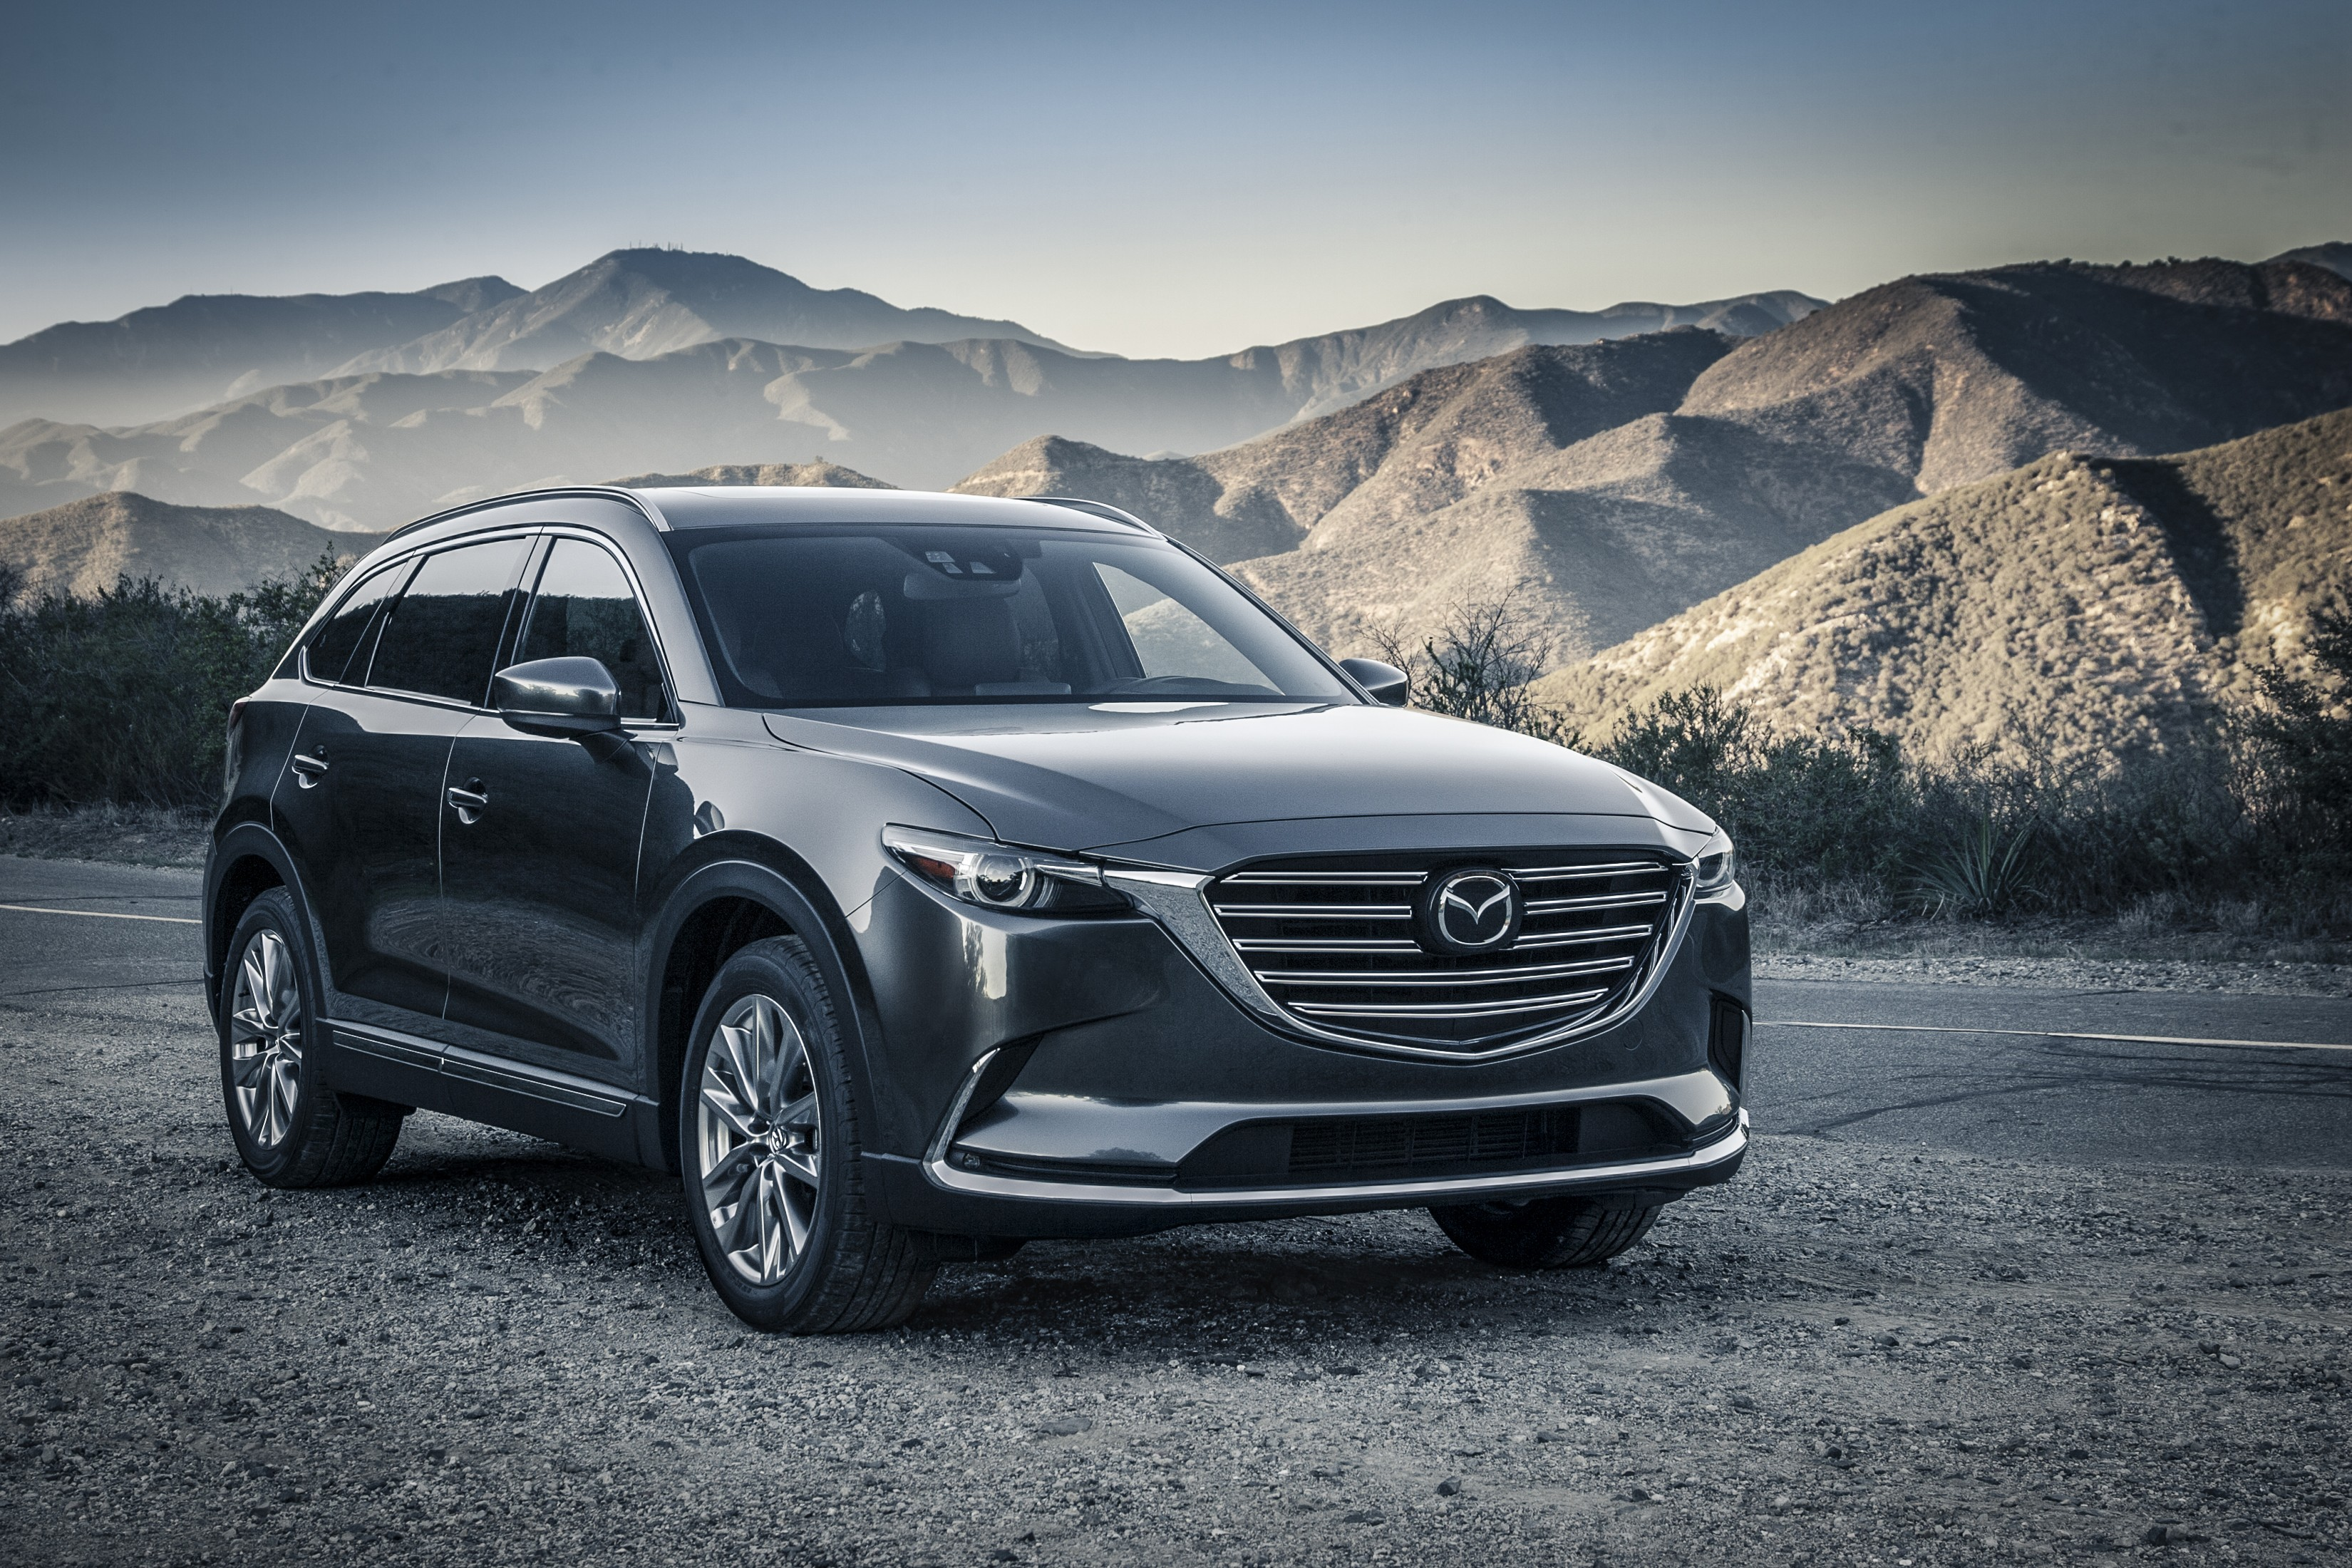 Mazda Offers Apple CarPlay, Android Auto Upgrade For $199